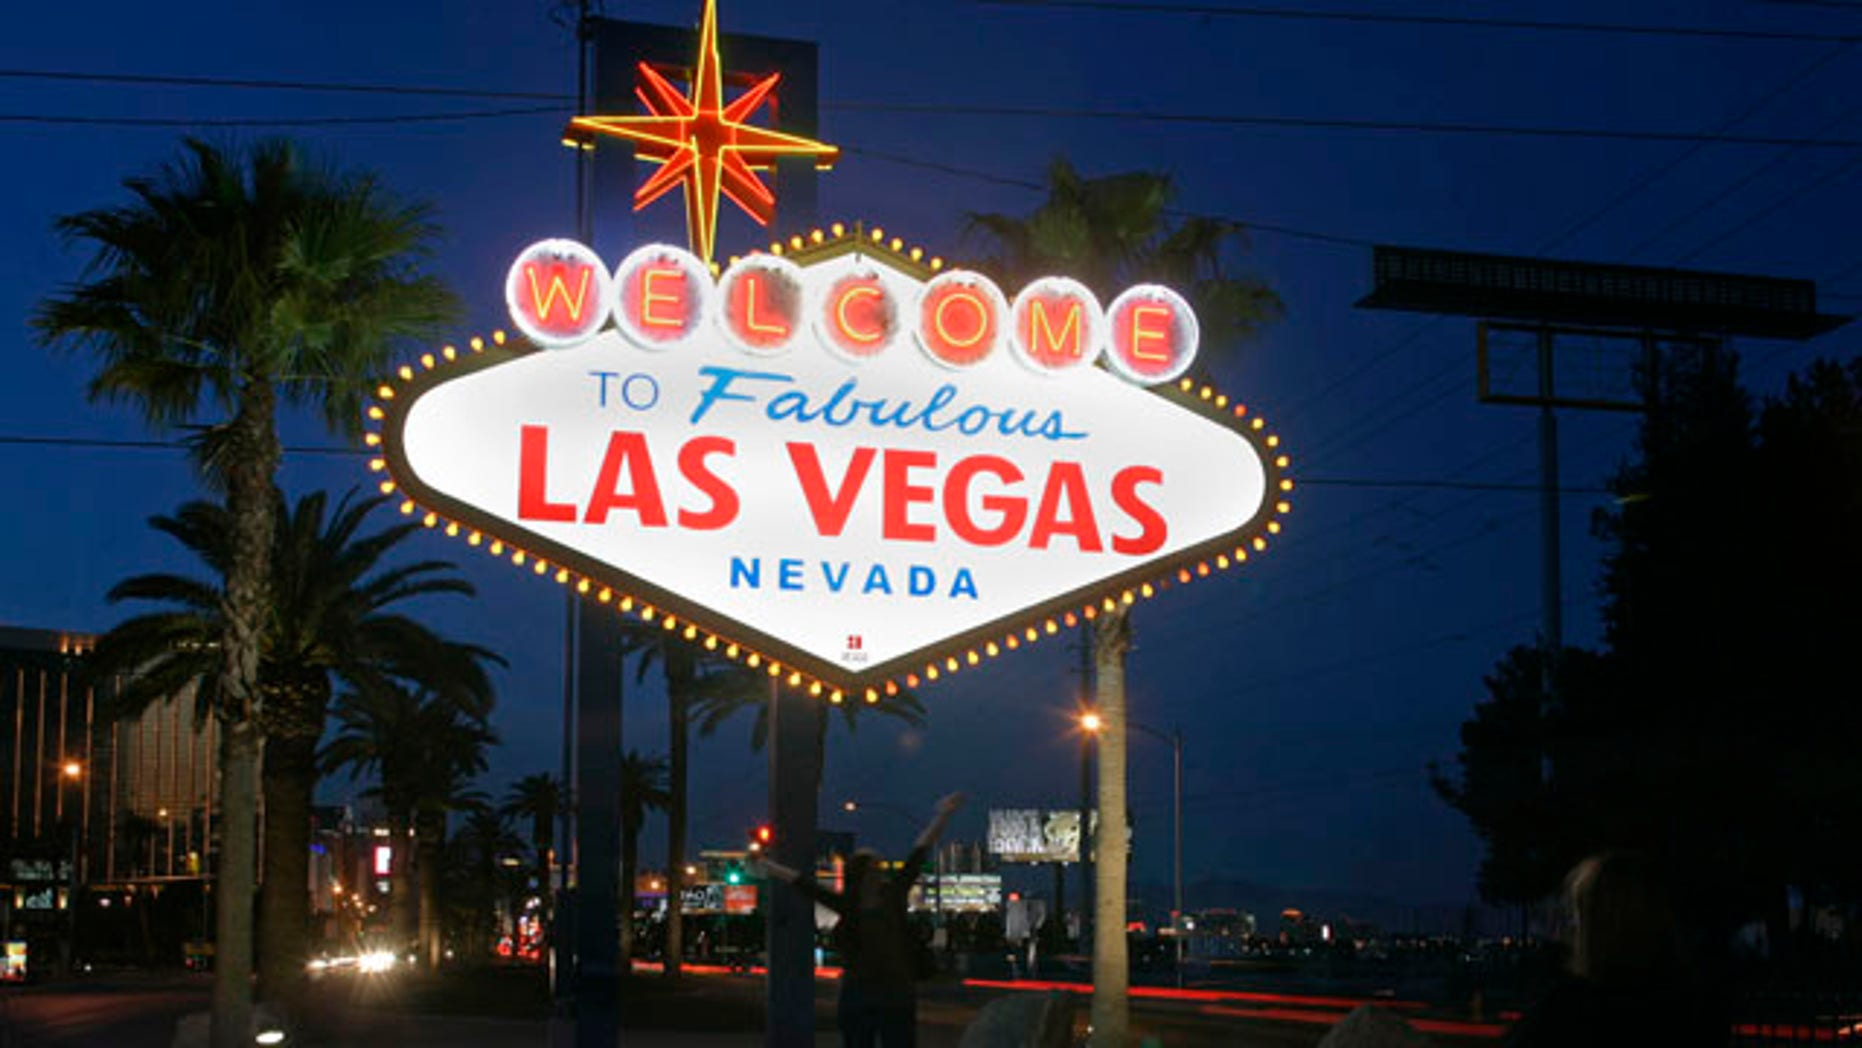 A view of the 'Welcome To Fabulous Las Vegas' neon sign is seen before Earth Hour in Las Vegas, Nevada, March 27, 2010. Countries around the world have signed up for Earth Hour on Saturday in which homes, office towers and landmarks will turn off their lights from 8.30 pm local time to raise awareness about climate change and the threat from rising greenhouse gas emissions.  